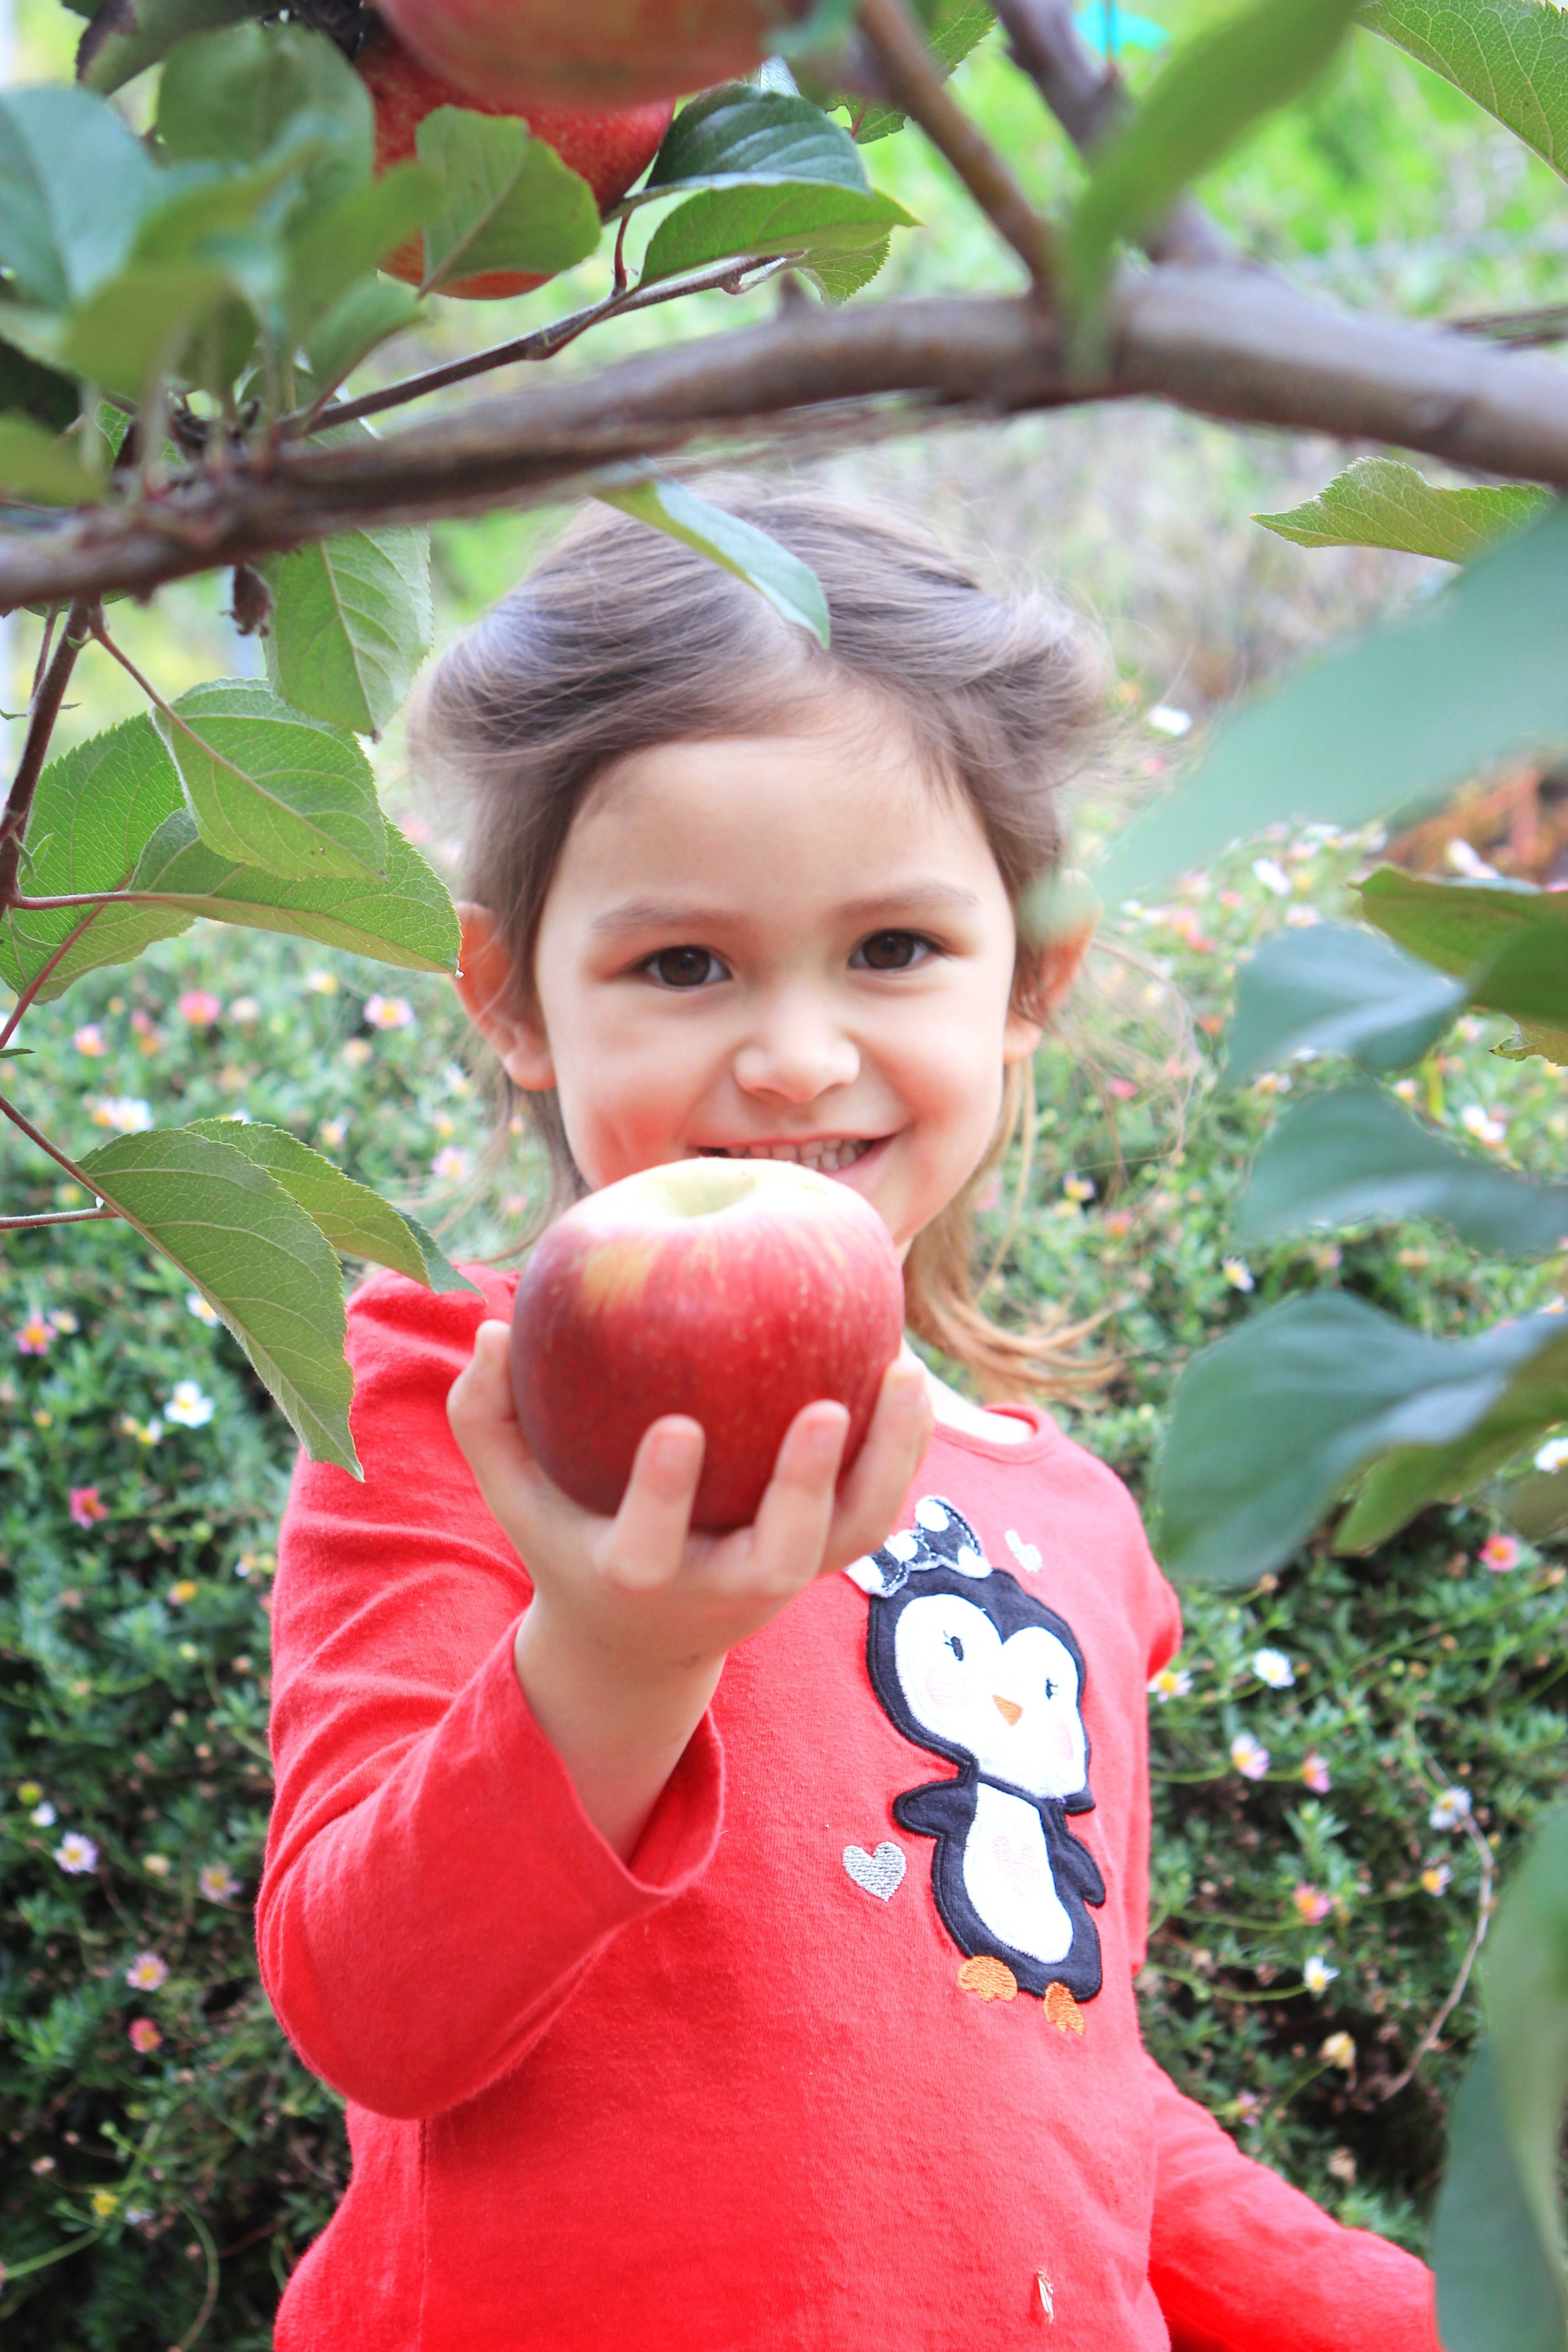 My granddaughter picking an apple in my garden.